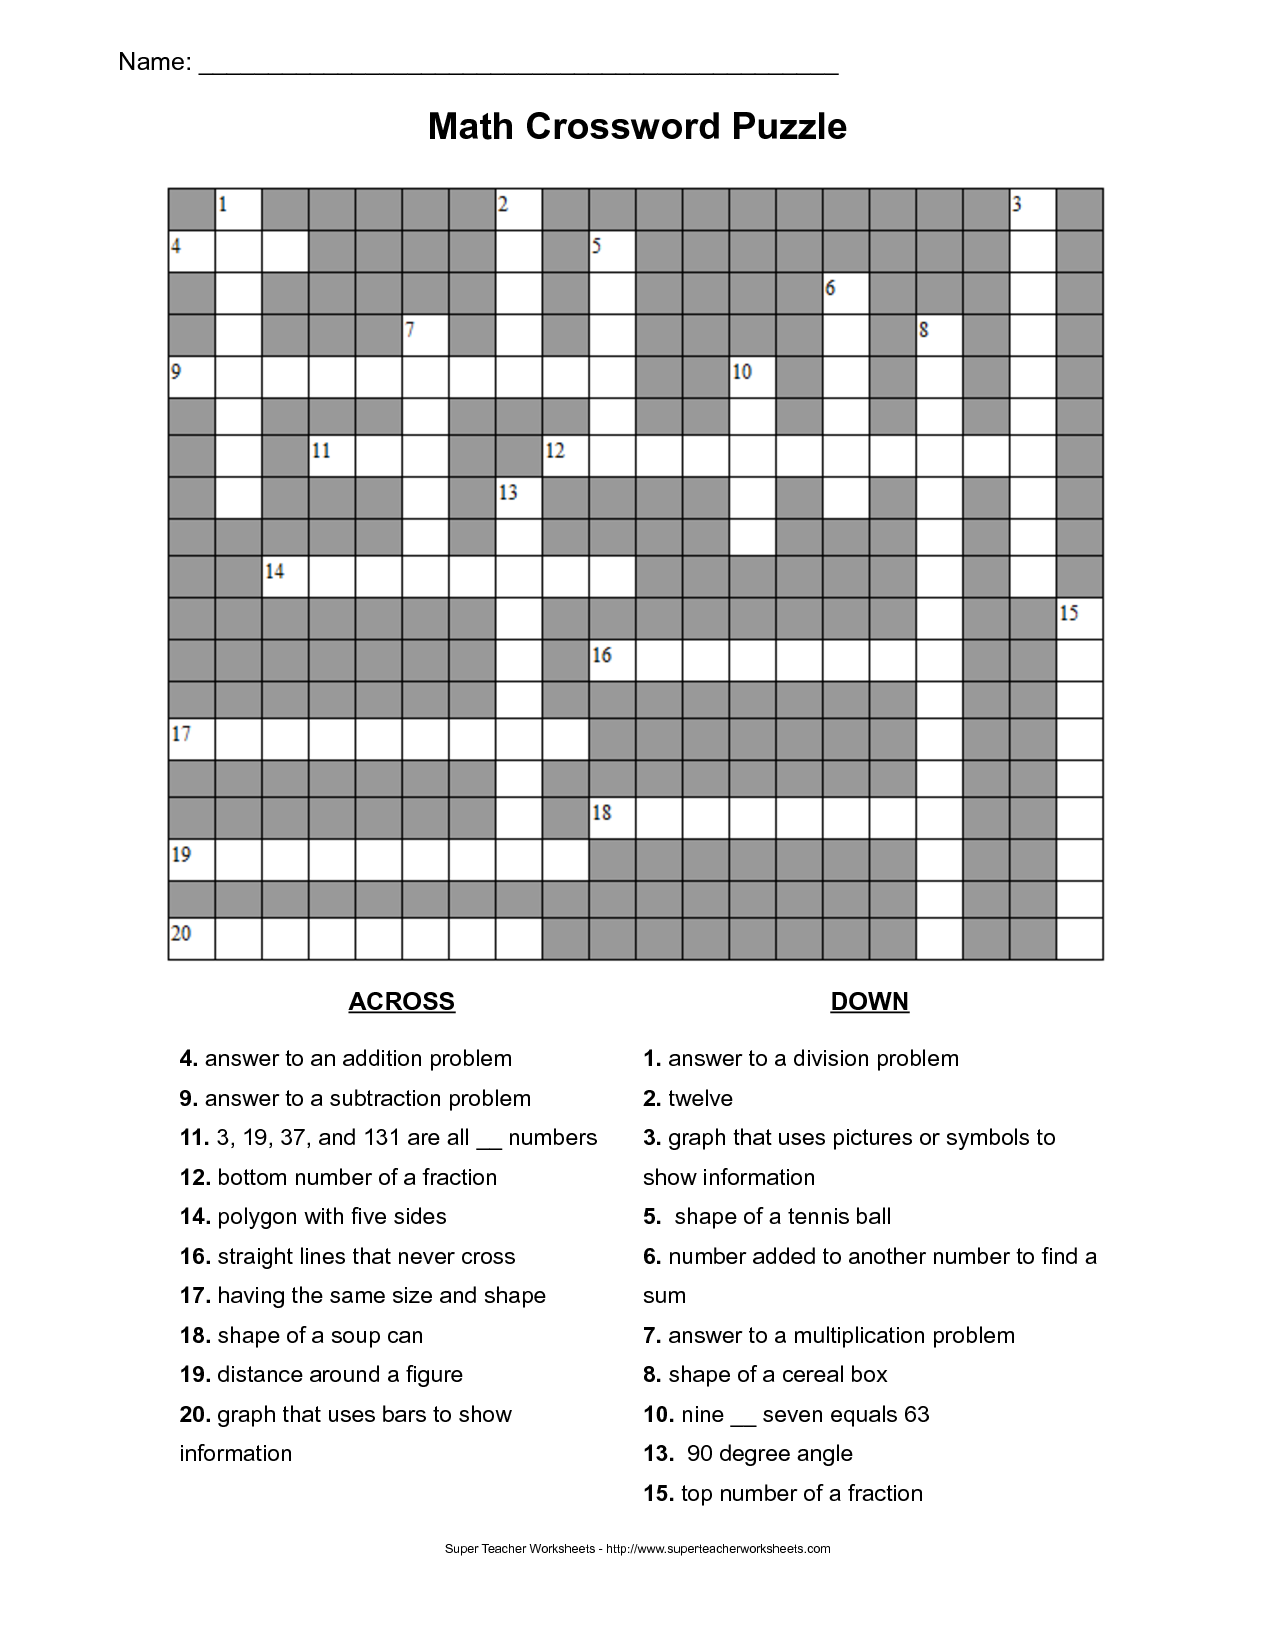 Crossword Puzzles Printable - Yahoo Image Search Results | Crossword ...